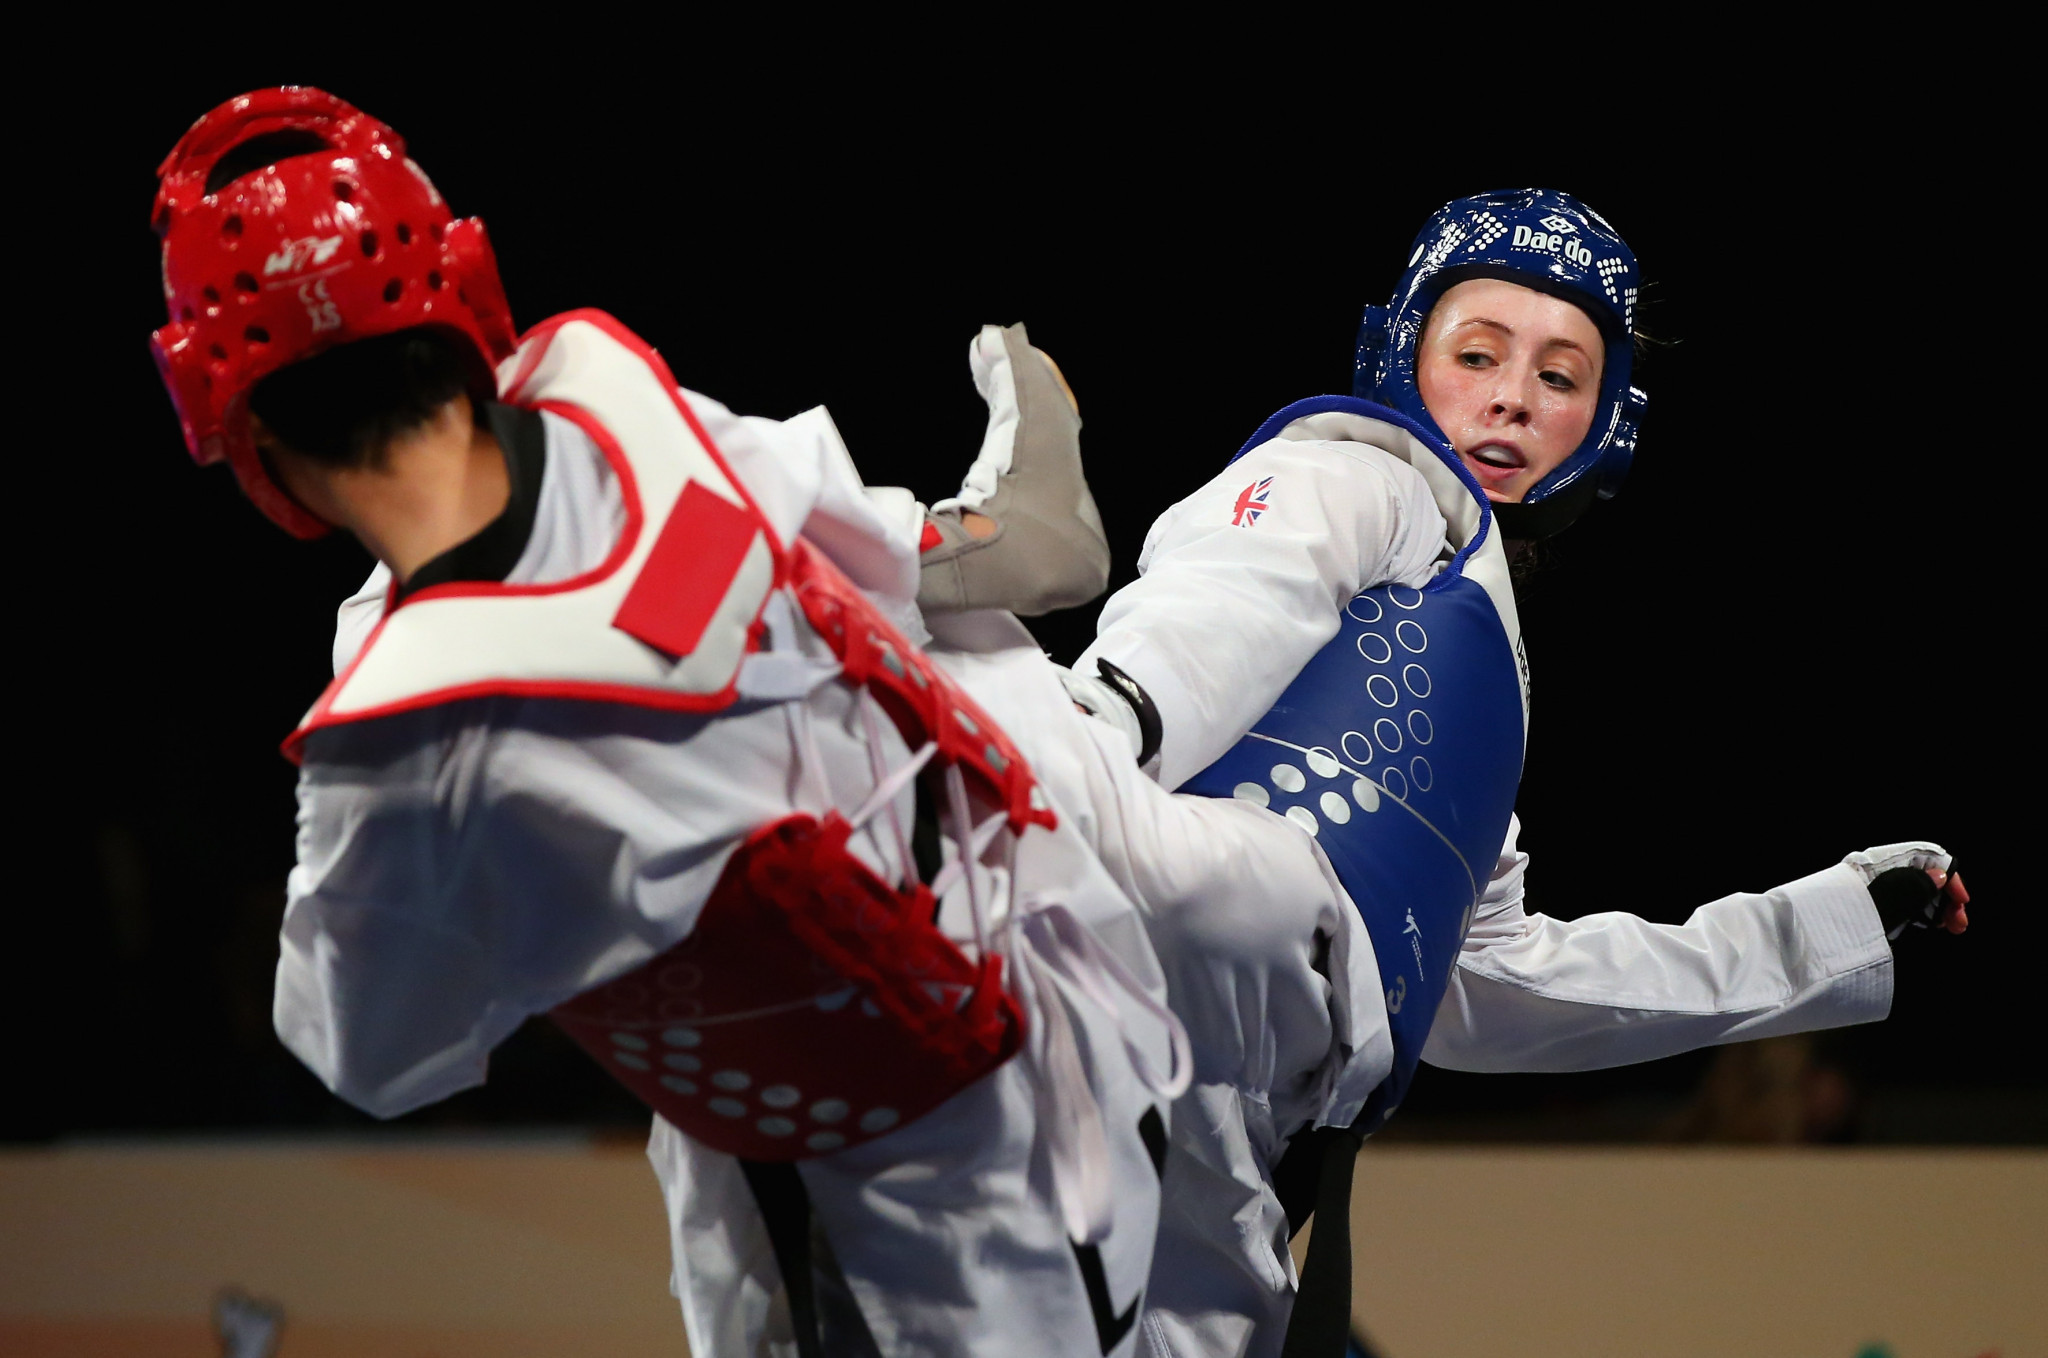 Milan to host European taekwondo qualifiers for Olympic and Paralympic Games